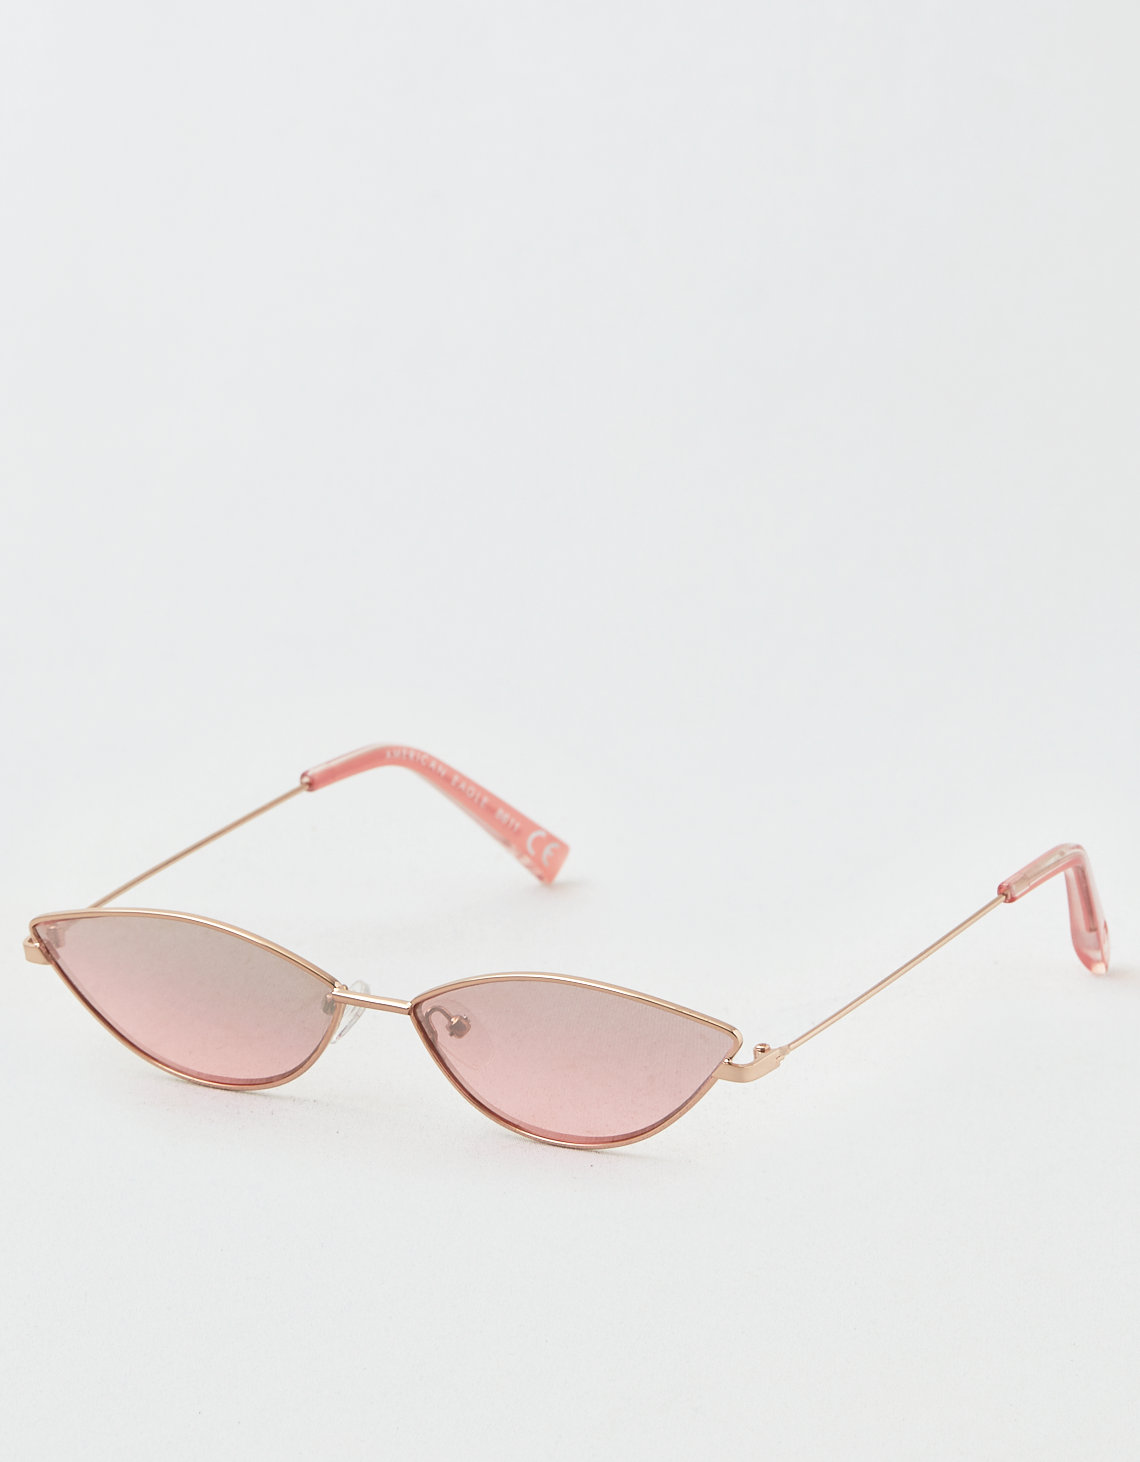 59c3f2c53d AE Rose Gold Metal Sunglasses. Placeholder image. Product Image